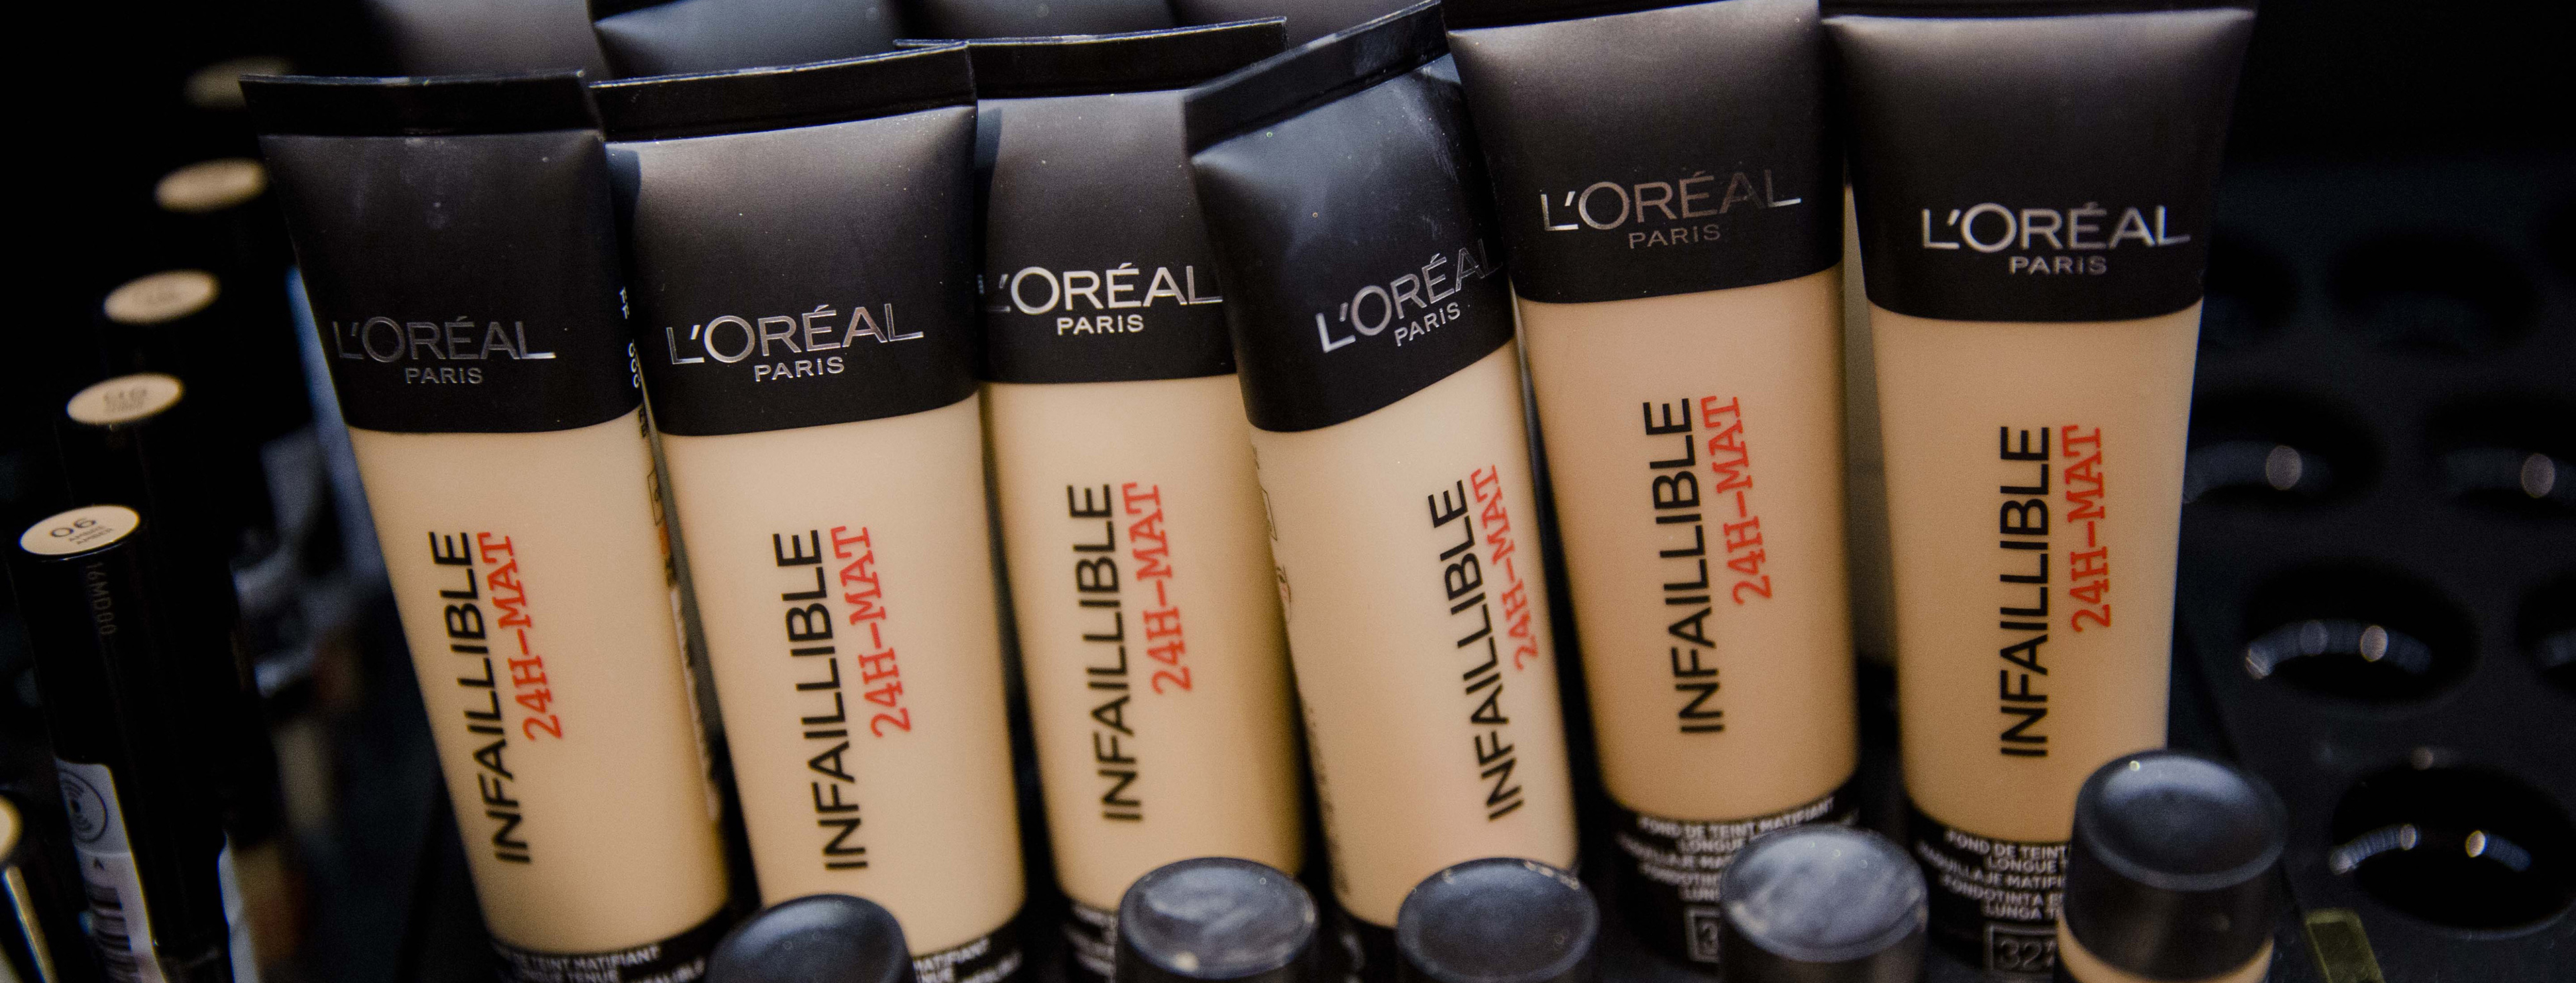 L'Oreal  Products On Display Ahead Of Paris-based Cosmetics Maker's Full Year Earnings